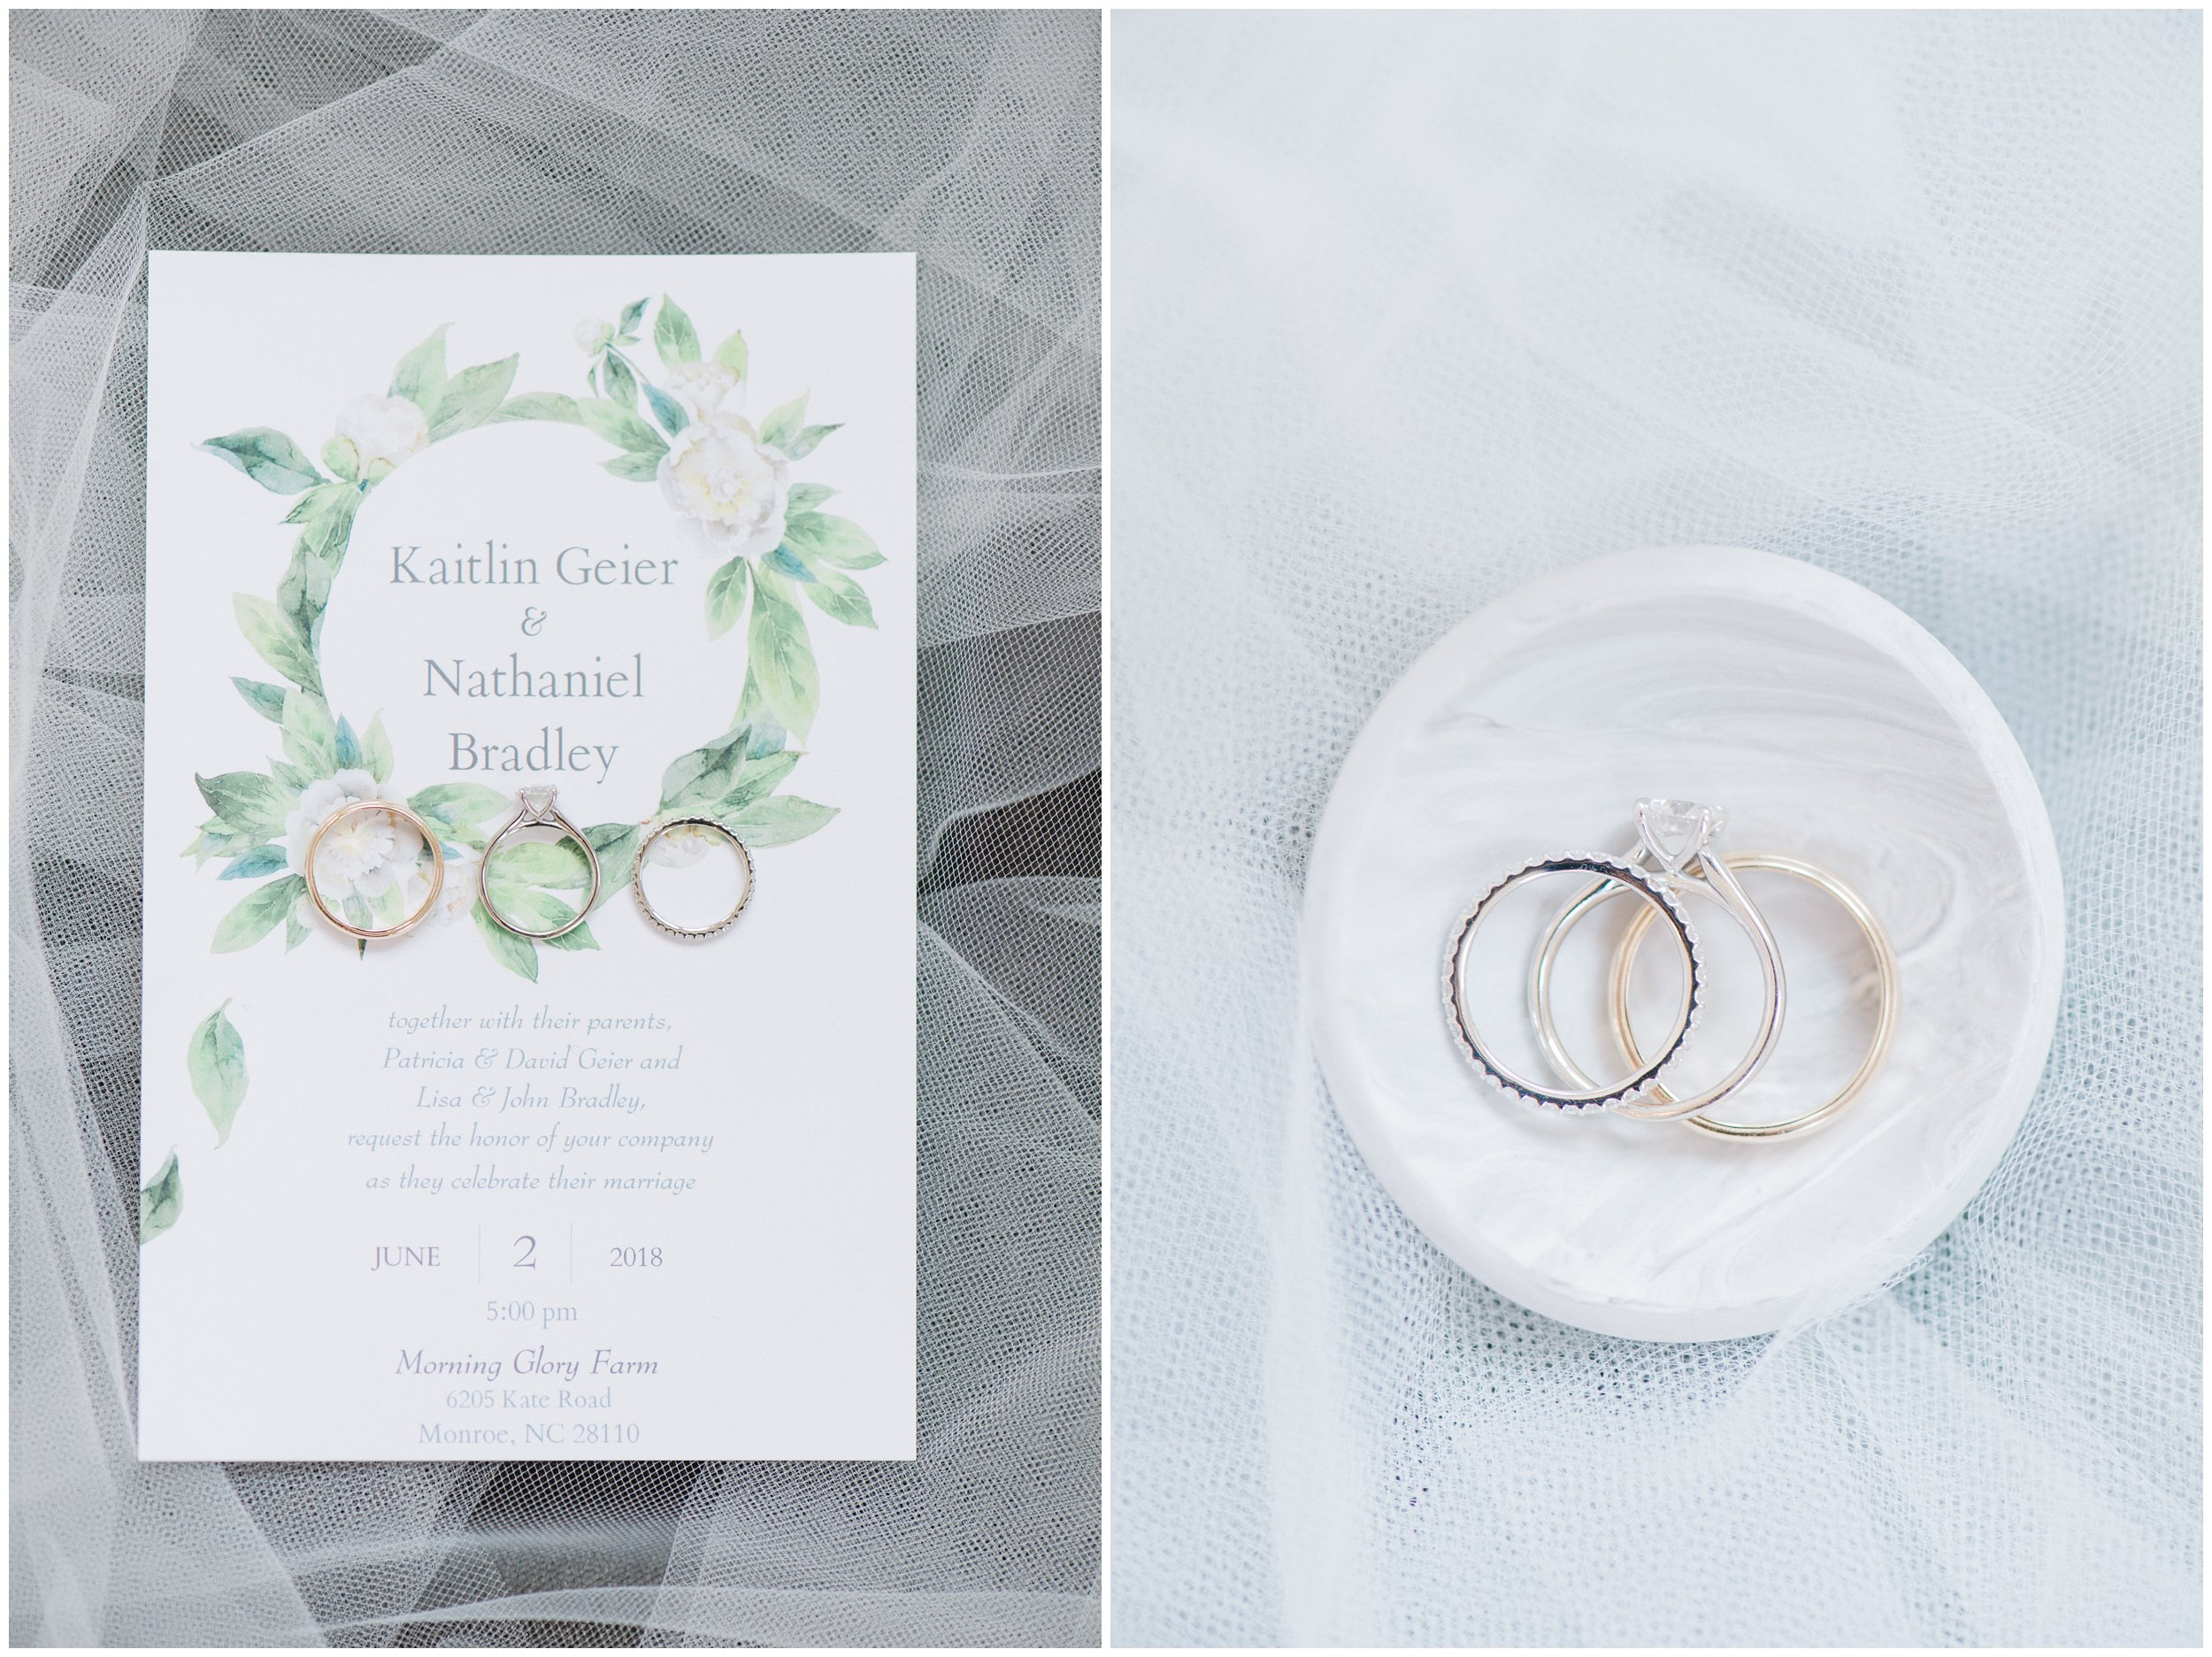 stationery and ring detail morning glory farm wedding